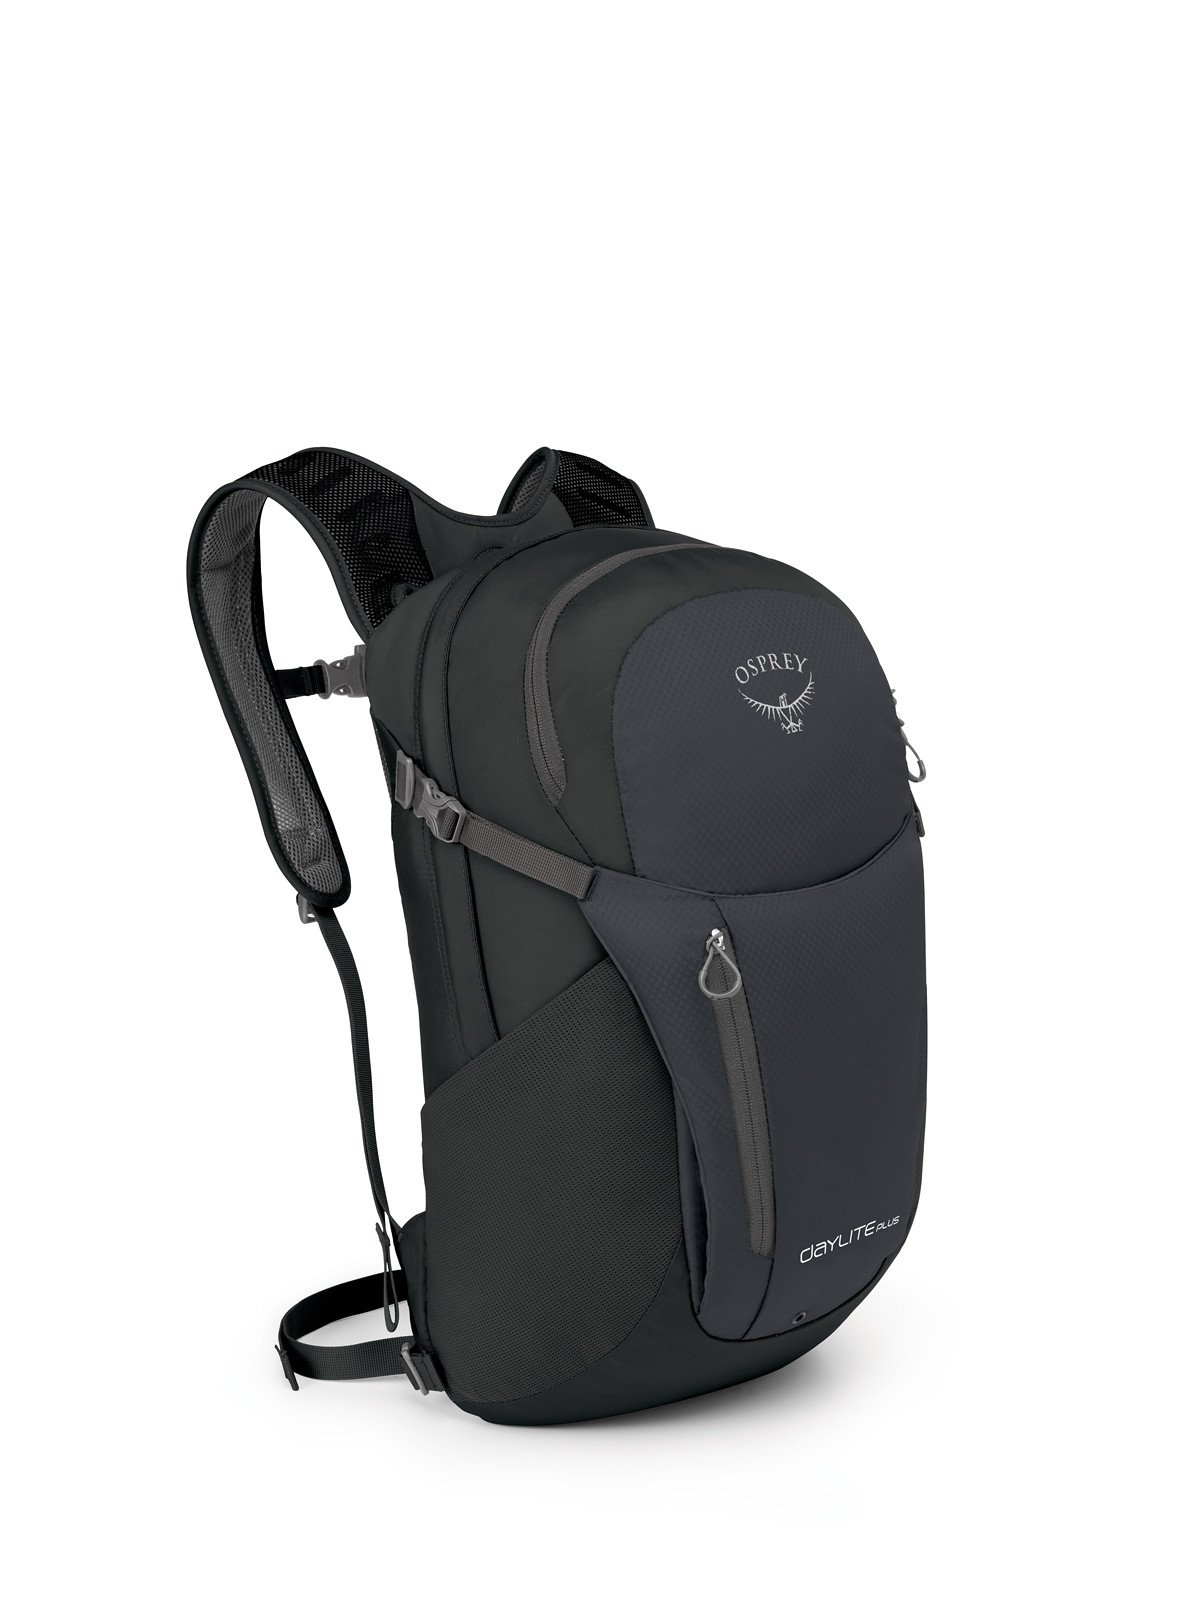 Osprey Daylite Plus Backpack Bag